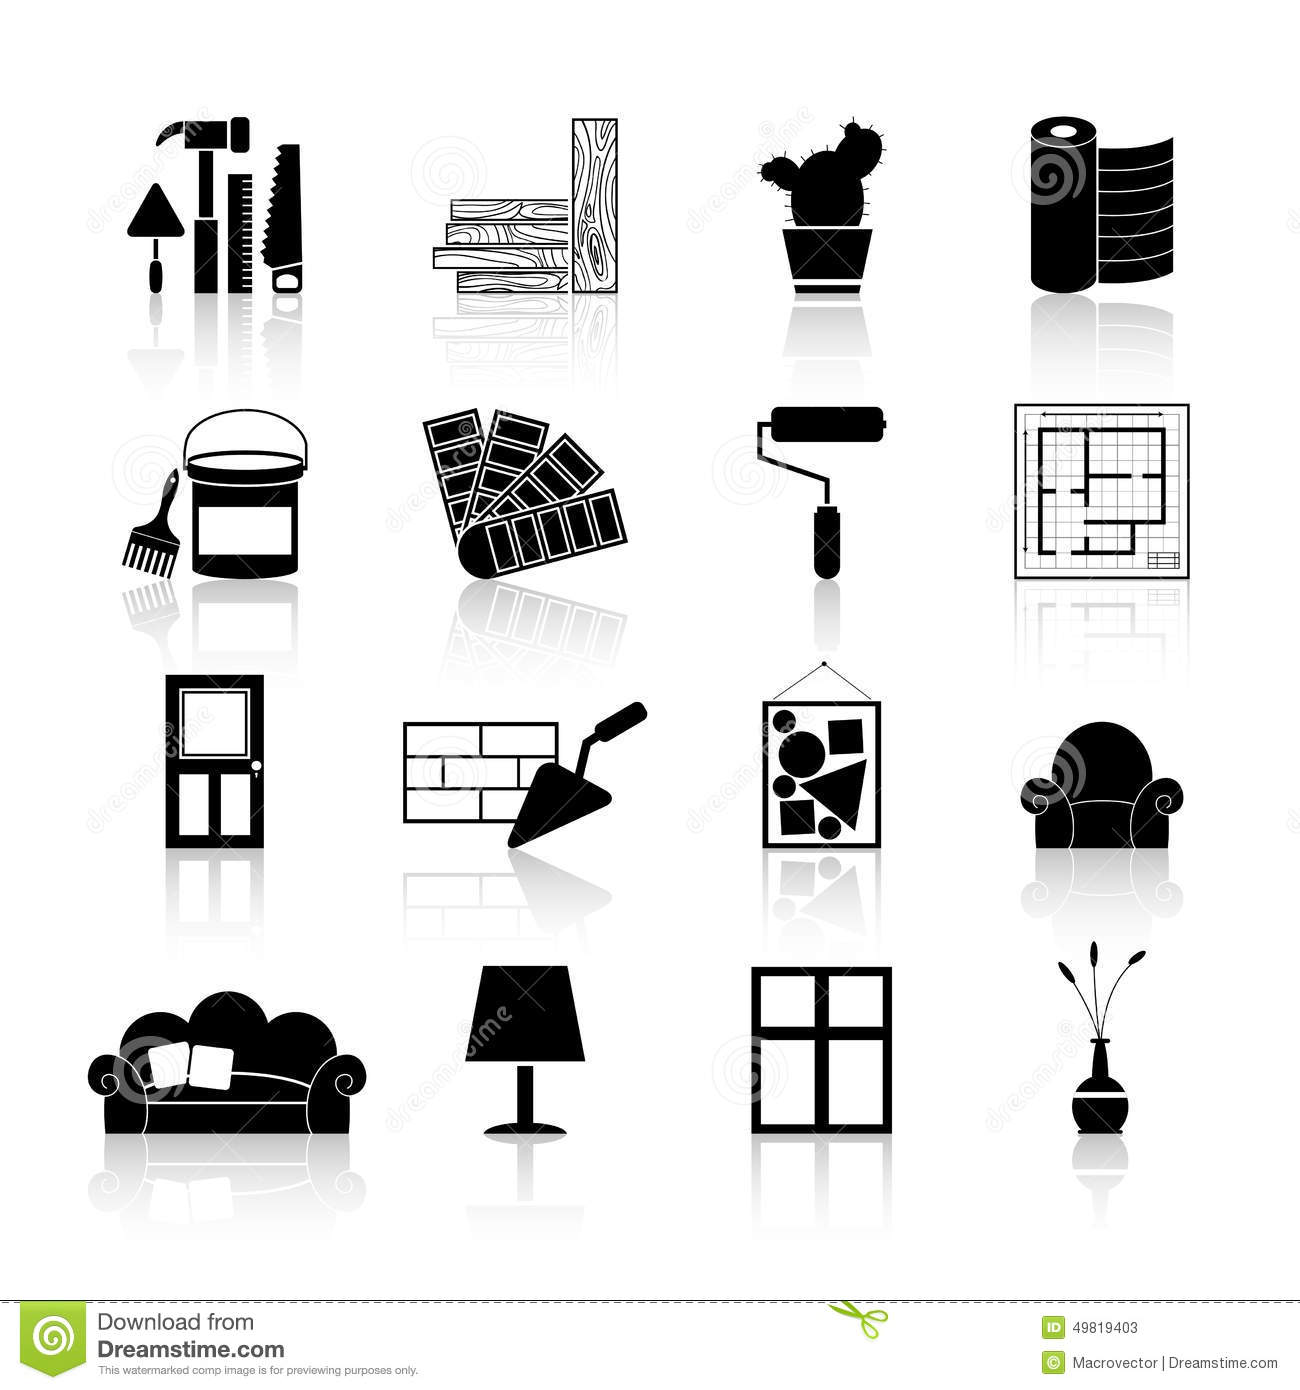 Art Black Decoration Design Icons Illustration Improvement Indoors Interior